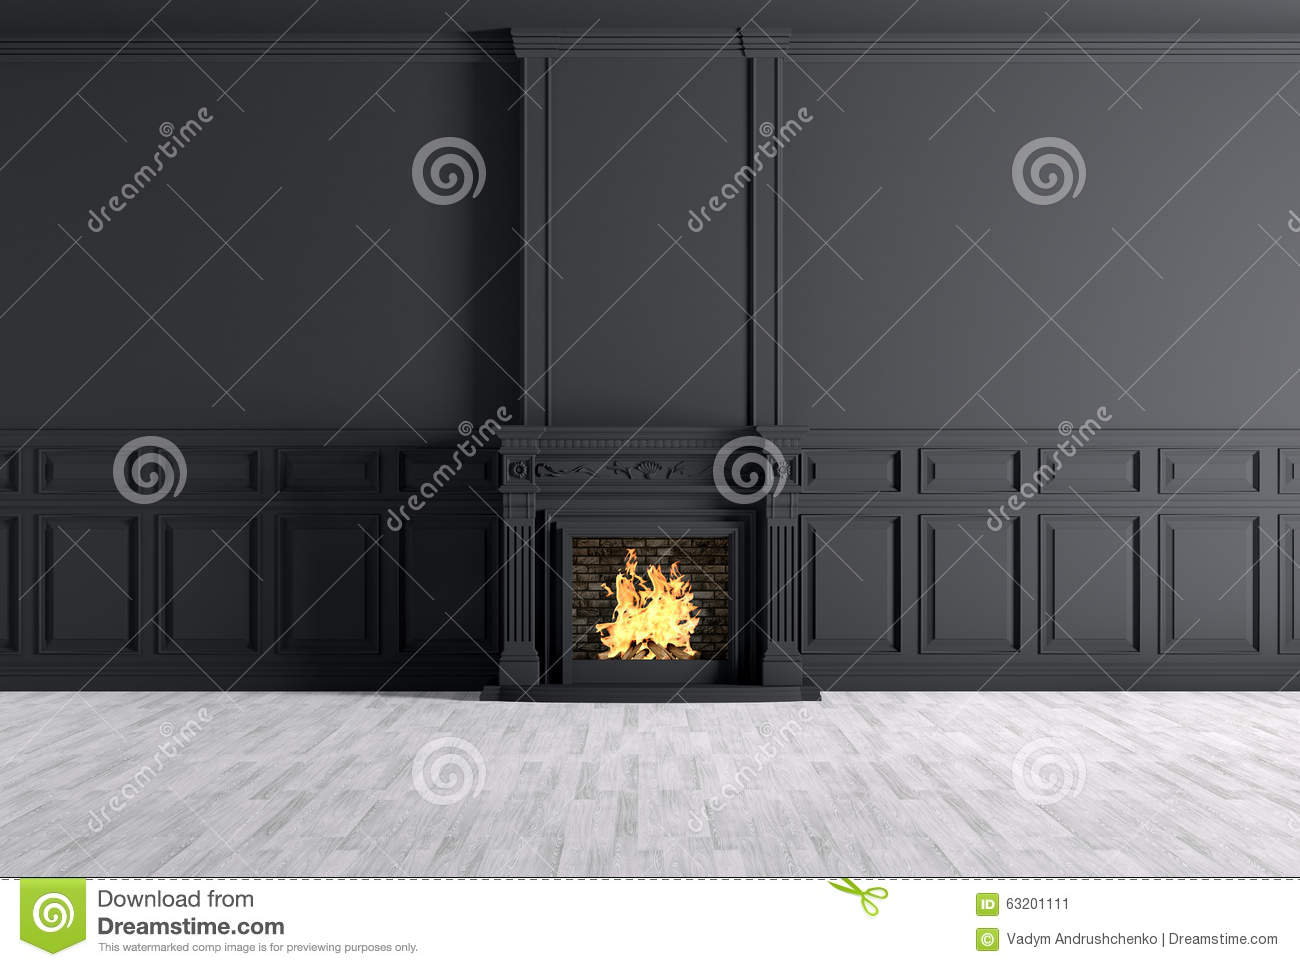 Black Wall Paneling : Empty classic interior of a room with fireplace over black